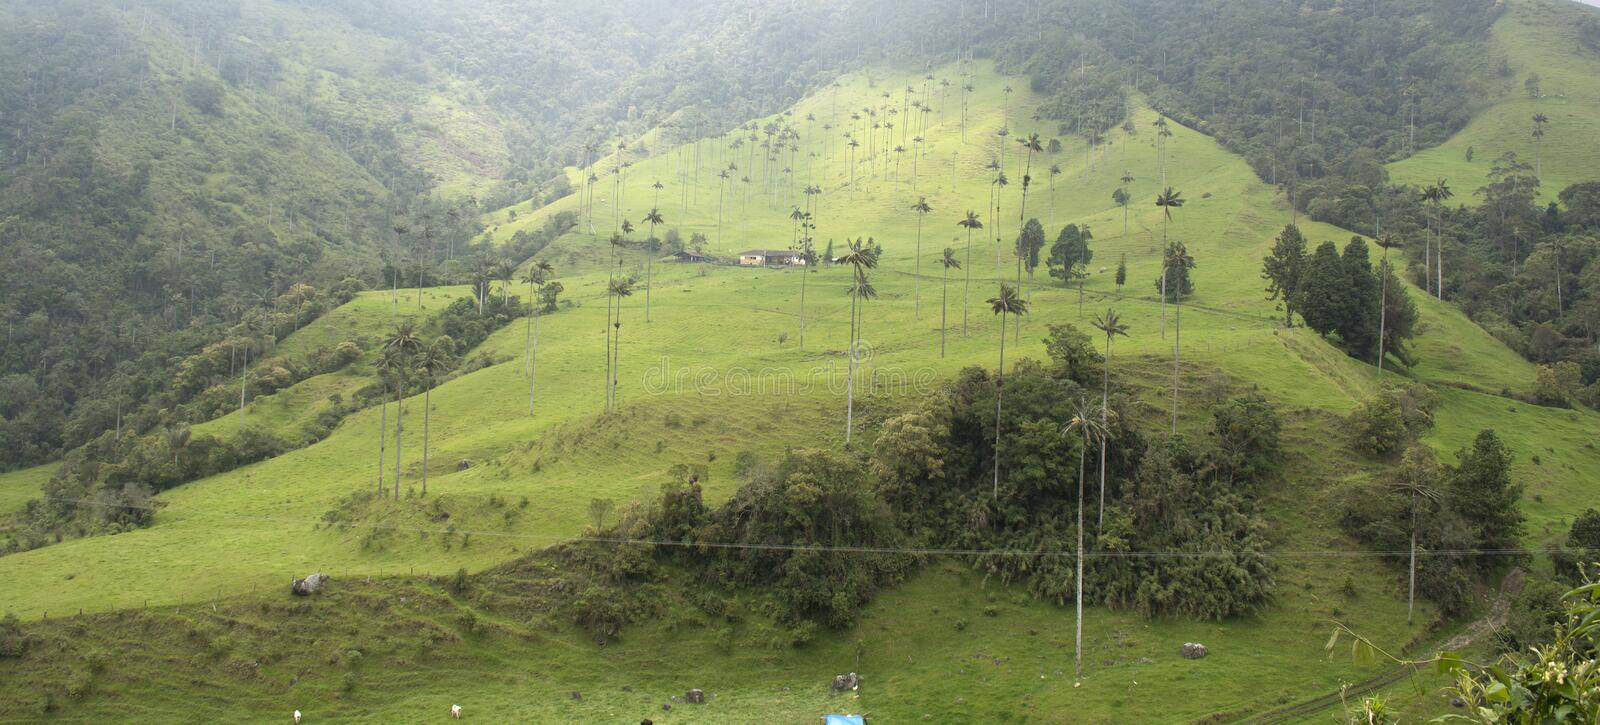 Mooi landschap in Valle DE Cocora, Salento, Colombia stock fotografie